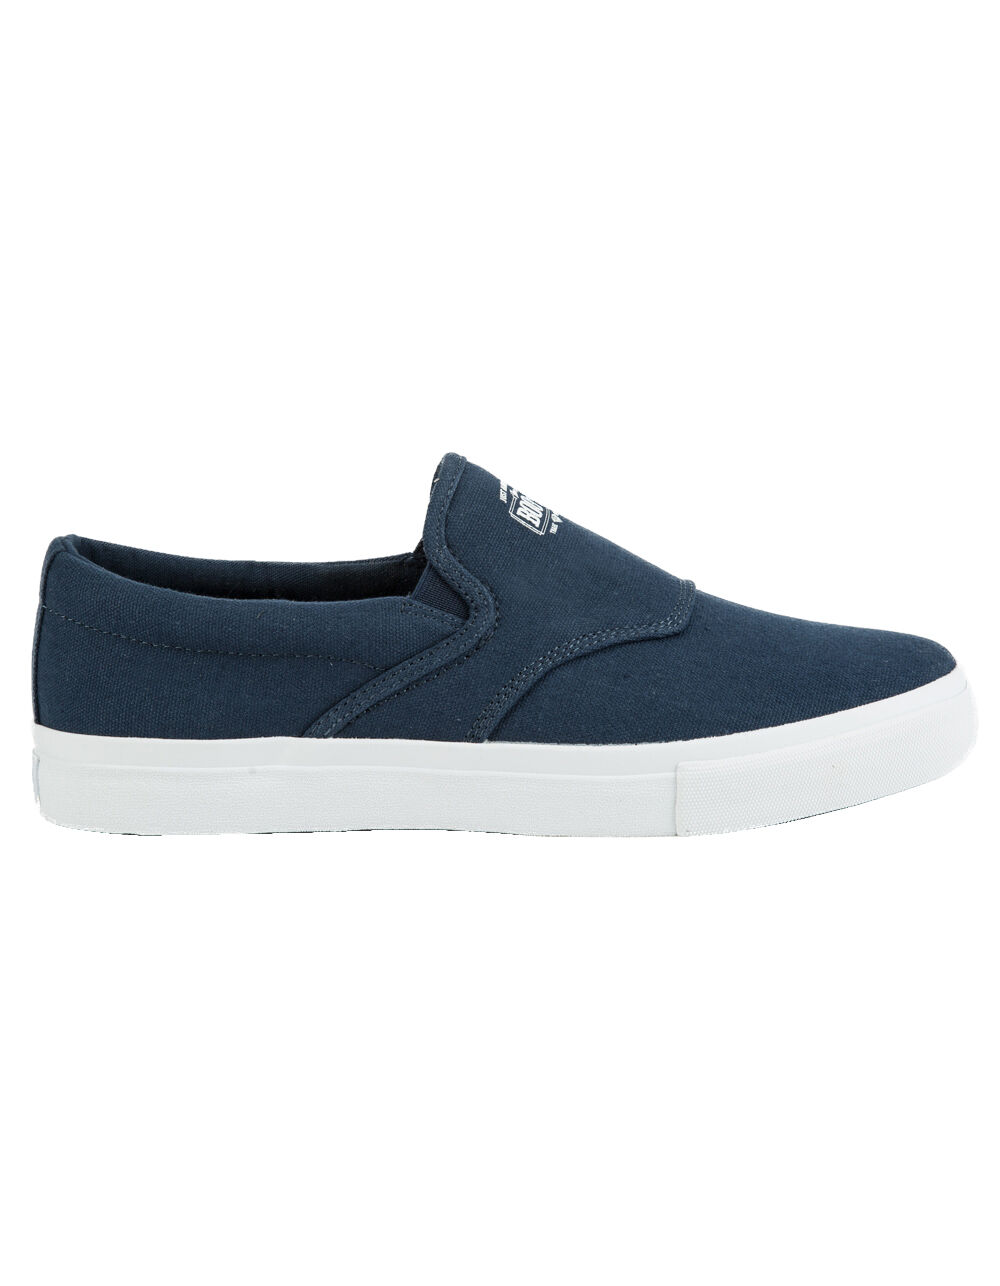 Image of DIAMOND SUPPLY CO. BOO J NAVY SHOES